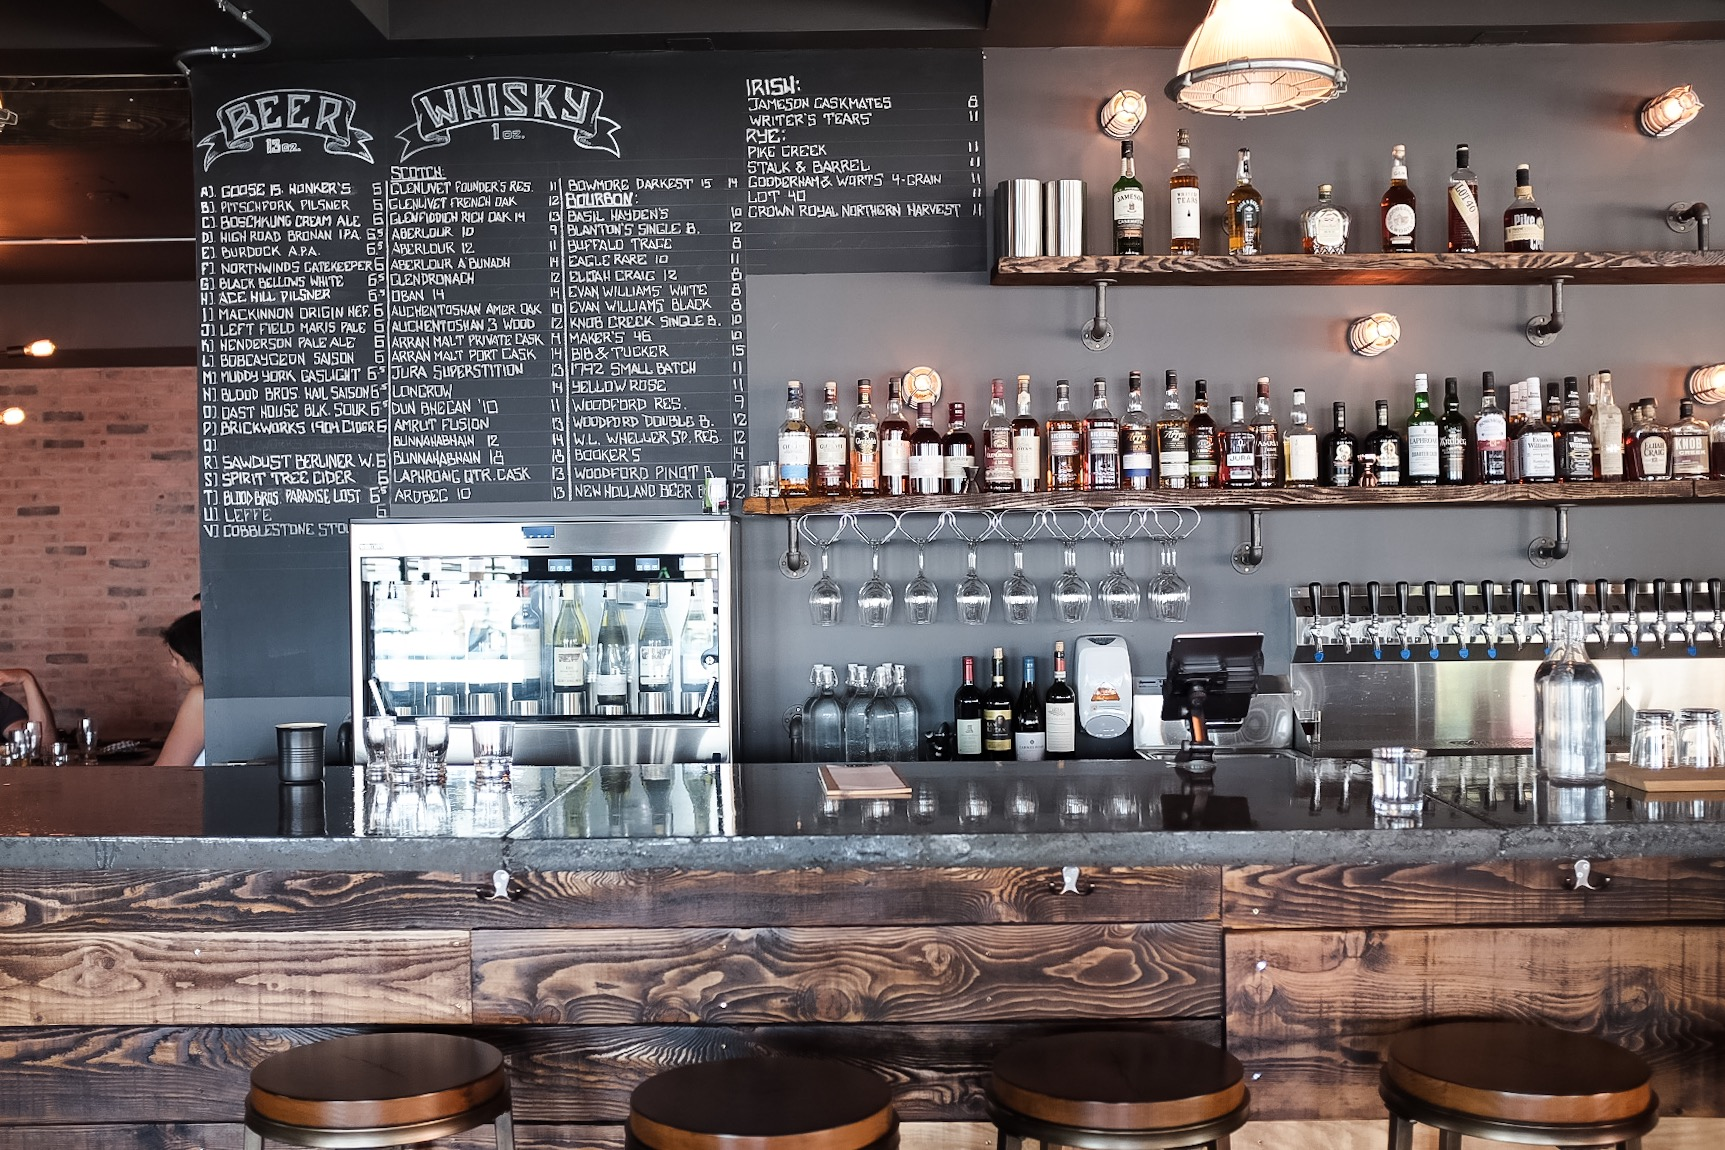 A well stocked bar and 'enough whisky to ruin a wedding' according to Boxcar Social.